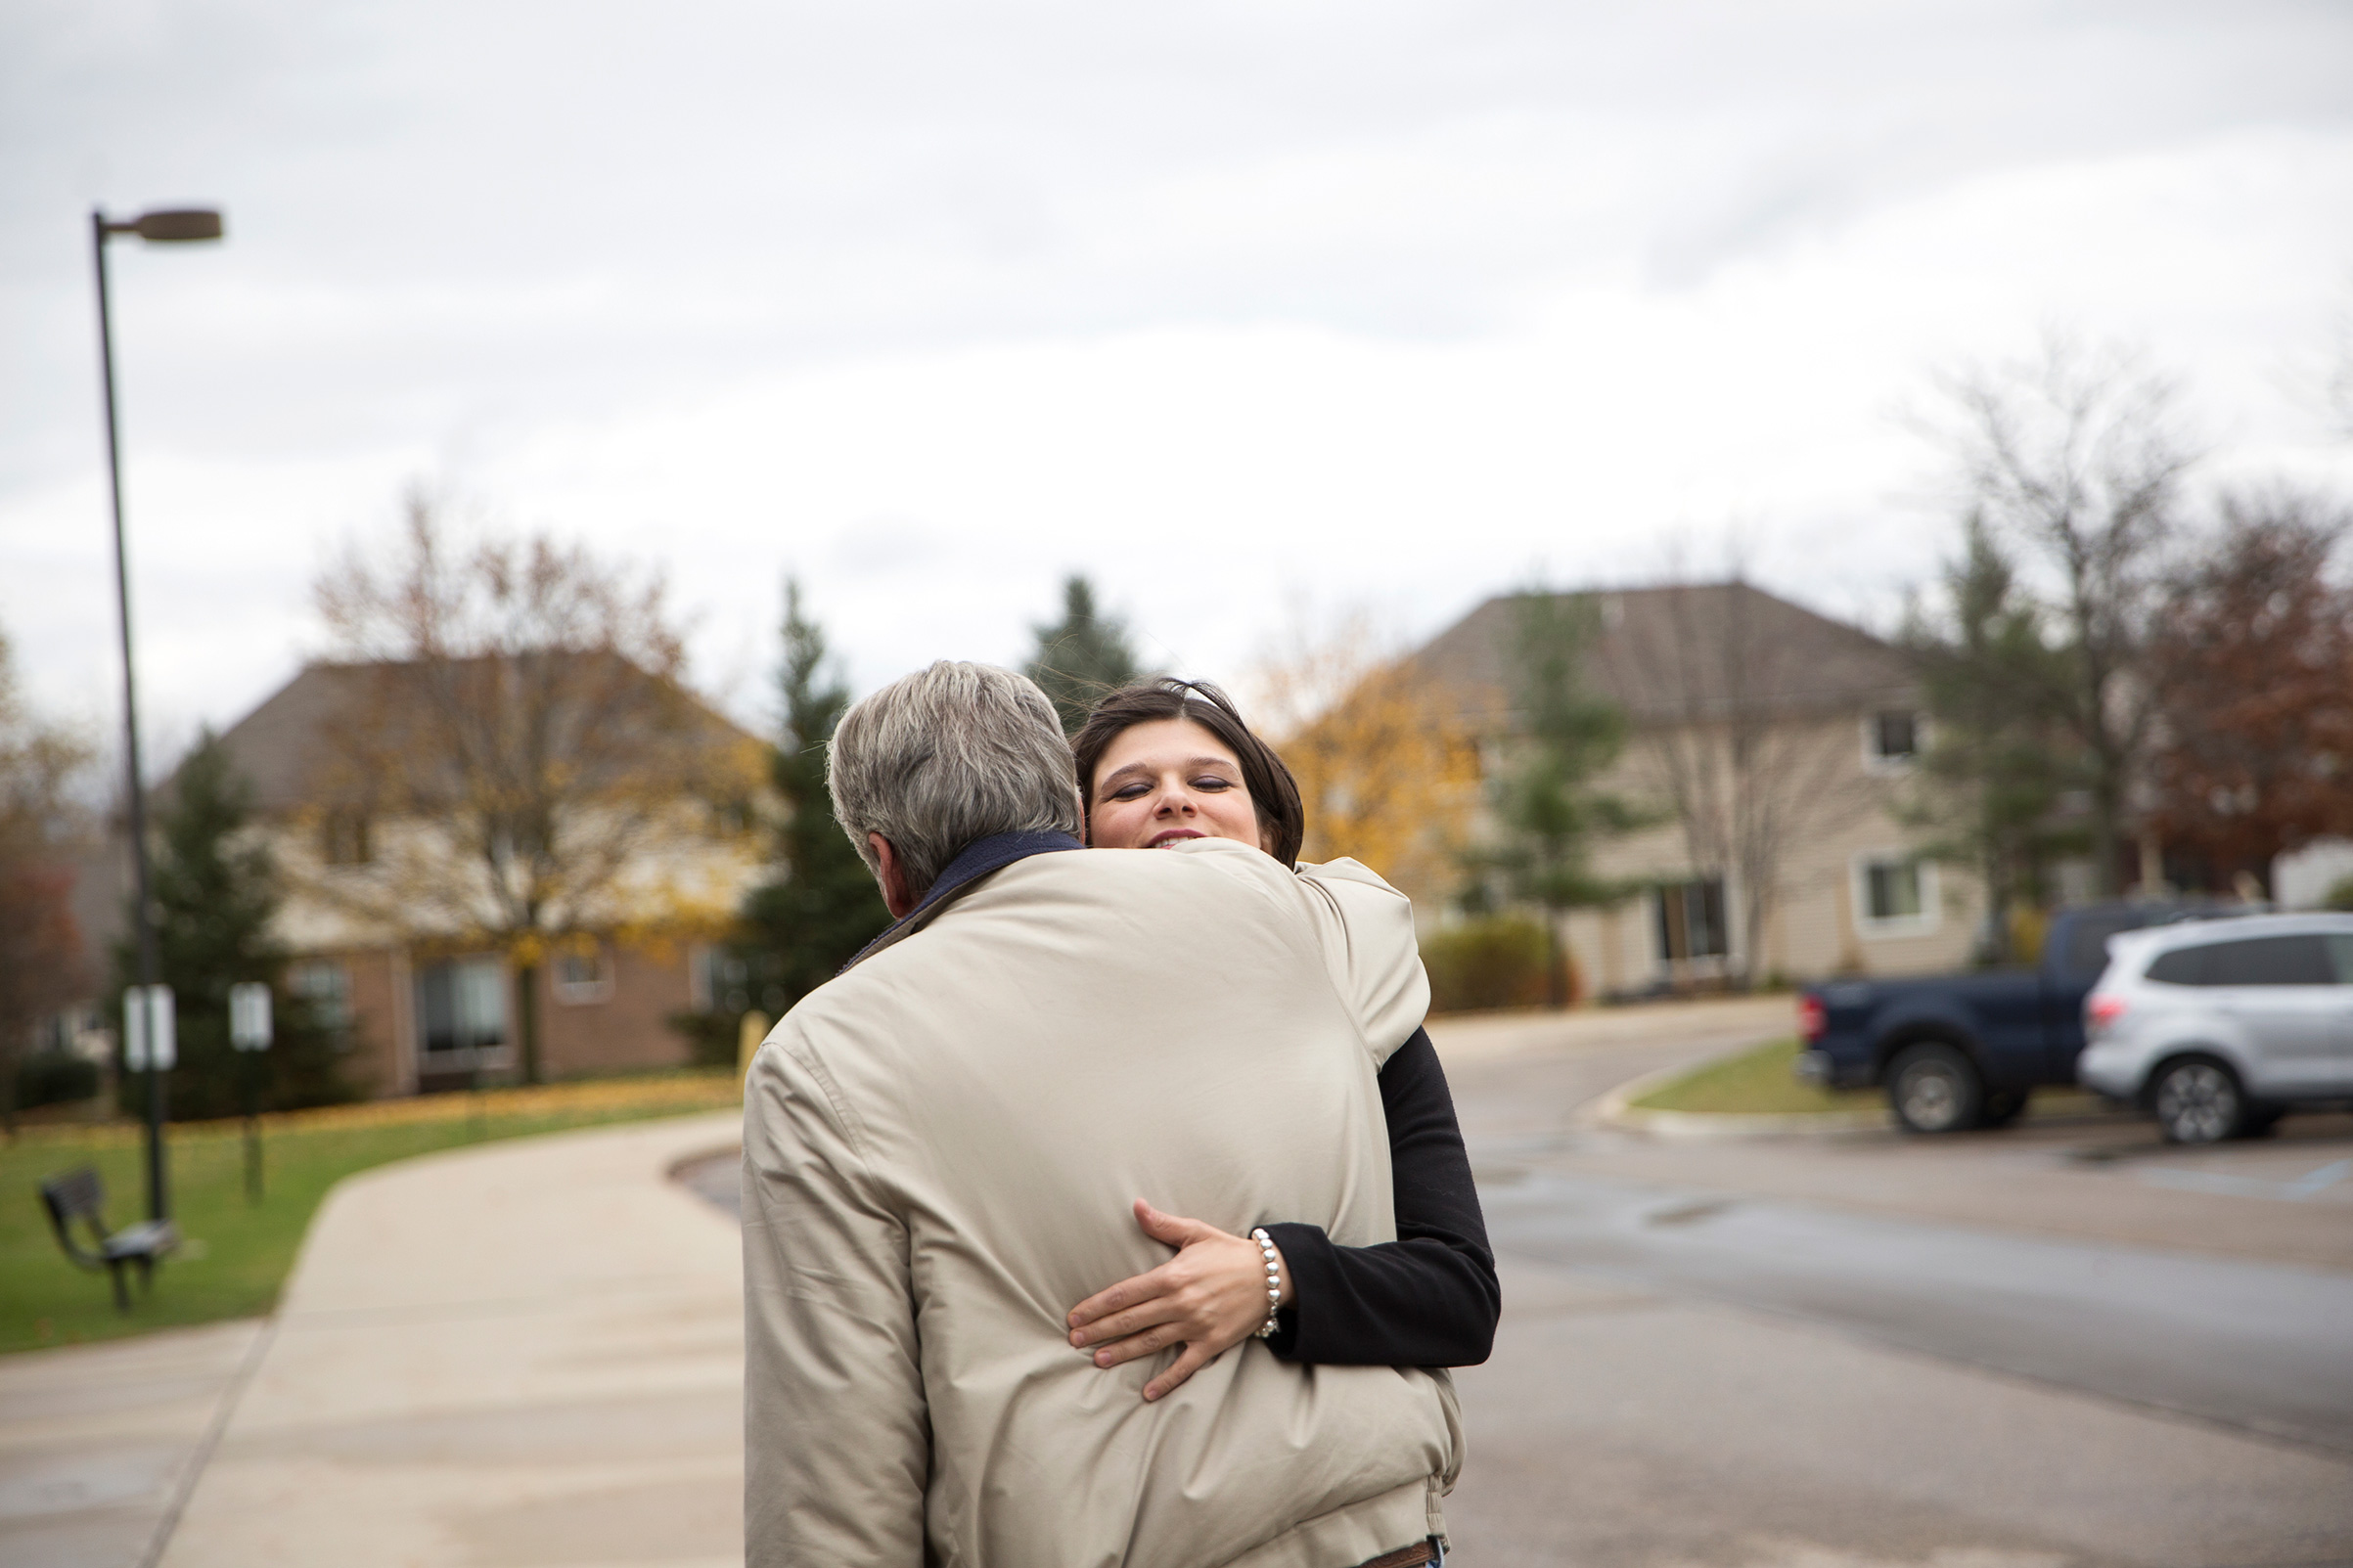 Democratic candidate for Michigan's 11th Congressional District Haley Stevens hugs her neighbor after running into him while voting at Deerfield Elementary School in Rochester Hills, Mich, on Tuesday, Nov. 6, 2018.